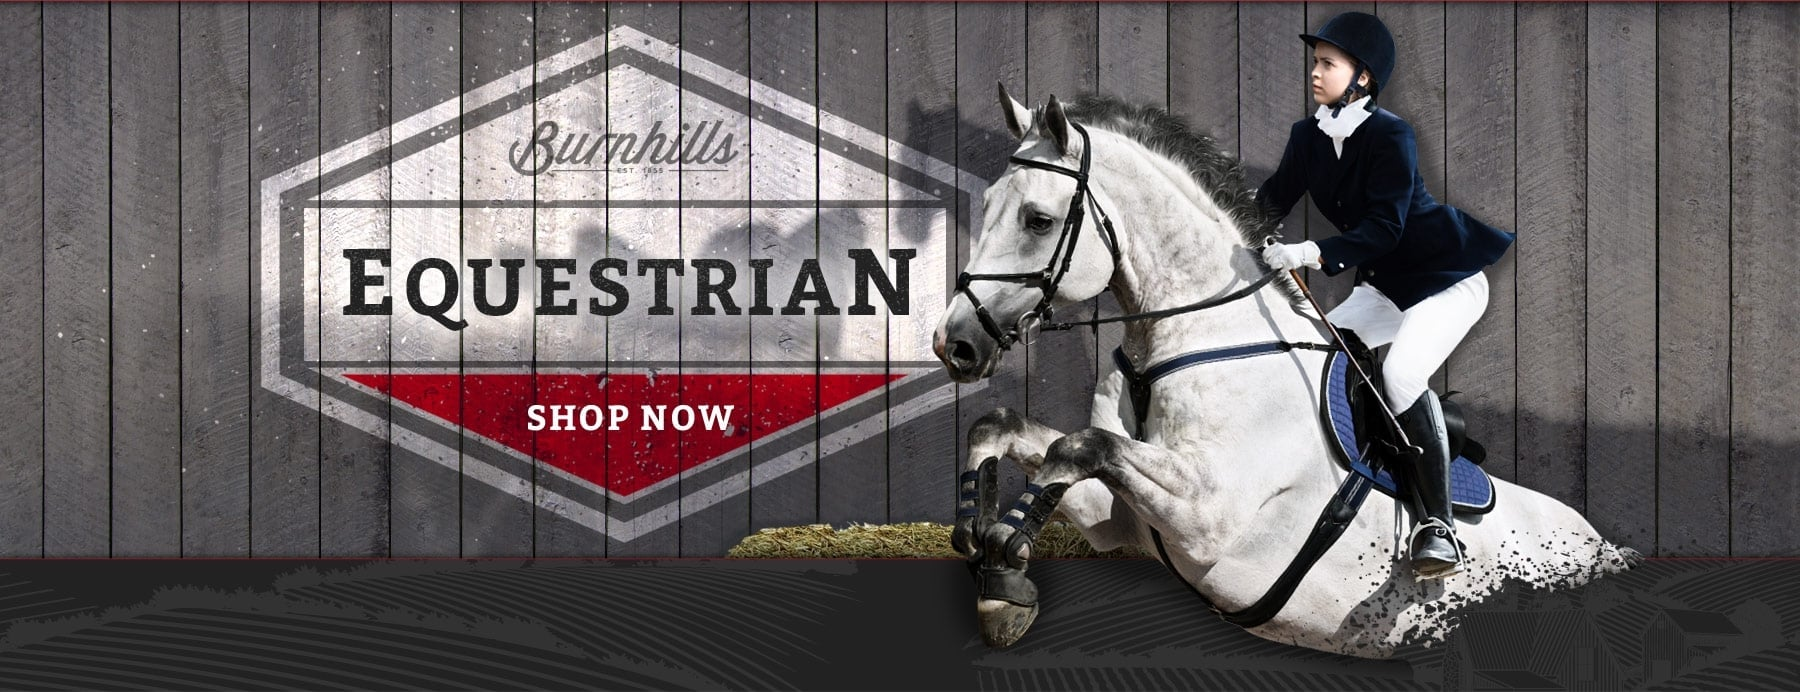 Equestrian - Shop Now